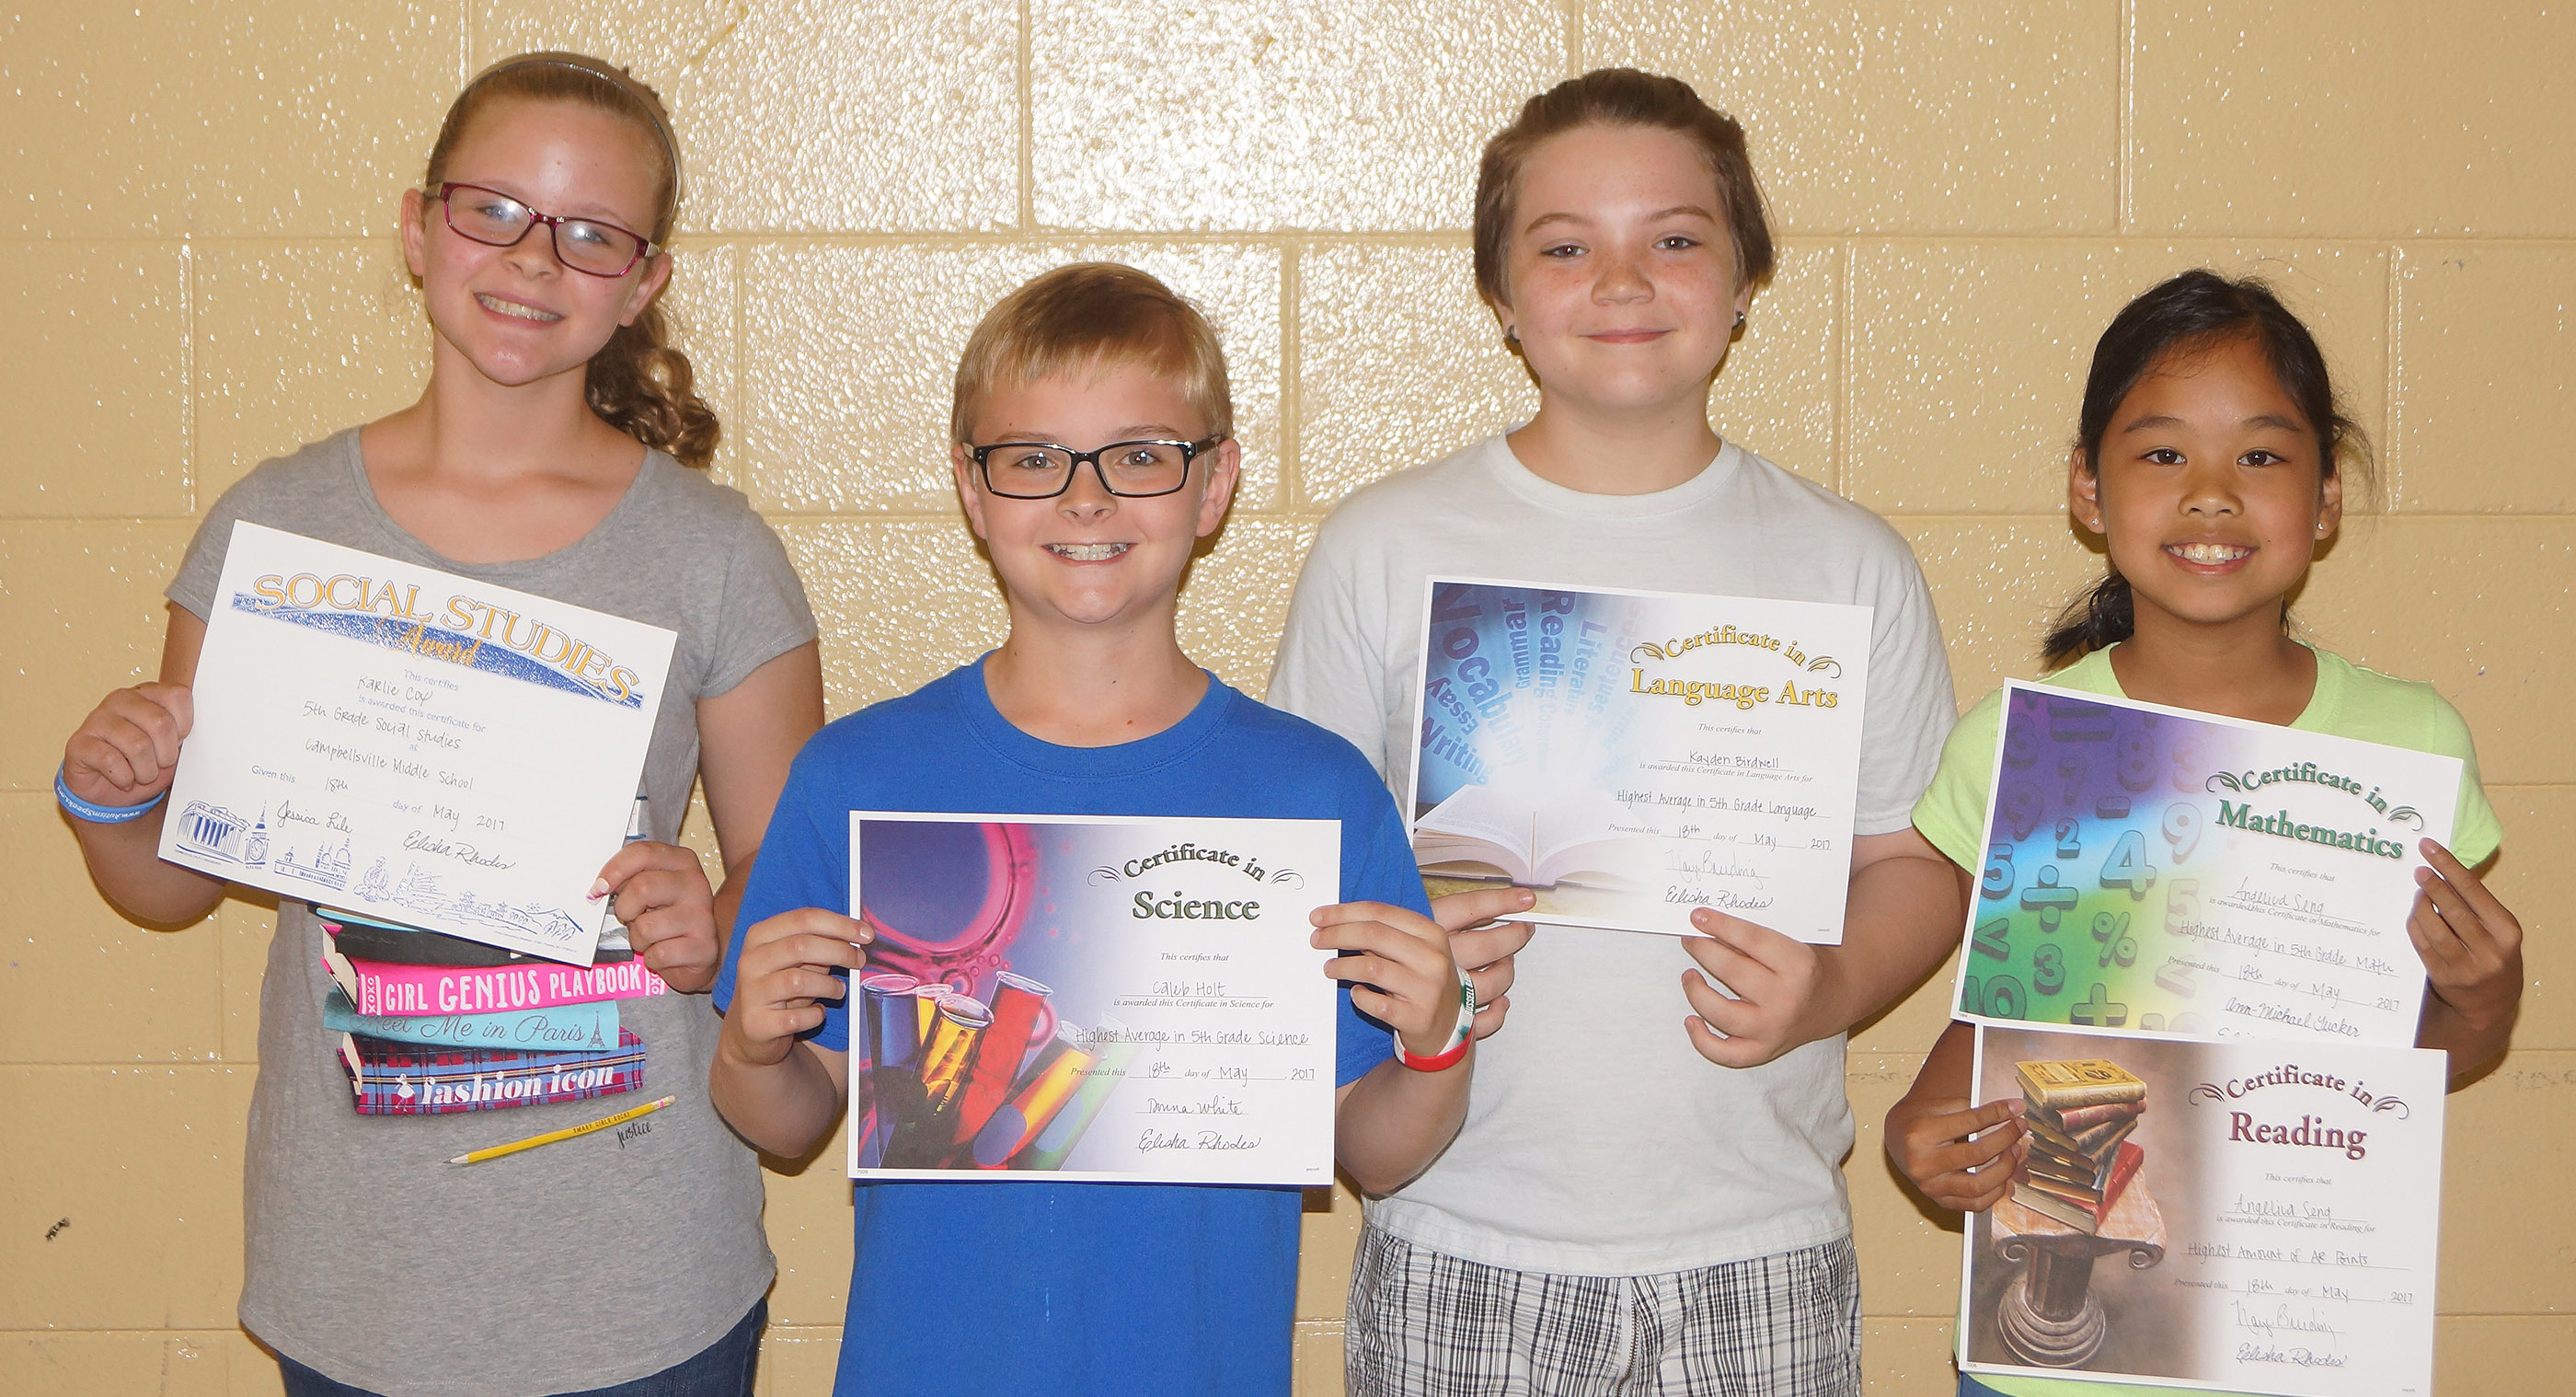 Fifth-grade subject award winners are, from left, Karlie Cox, social studies; Caleb Holt, science; Kayden Birdwell, language arts; and Angelica Seng, math and accelerated reader.